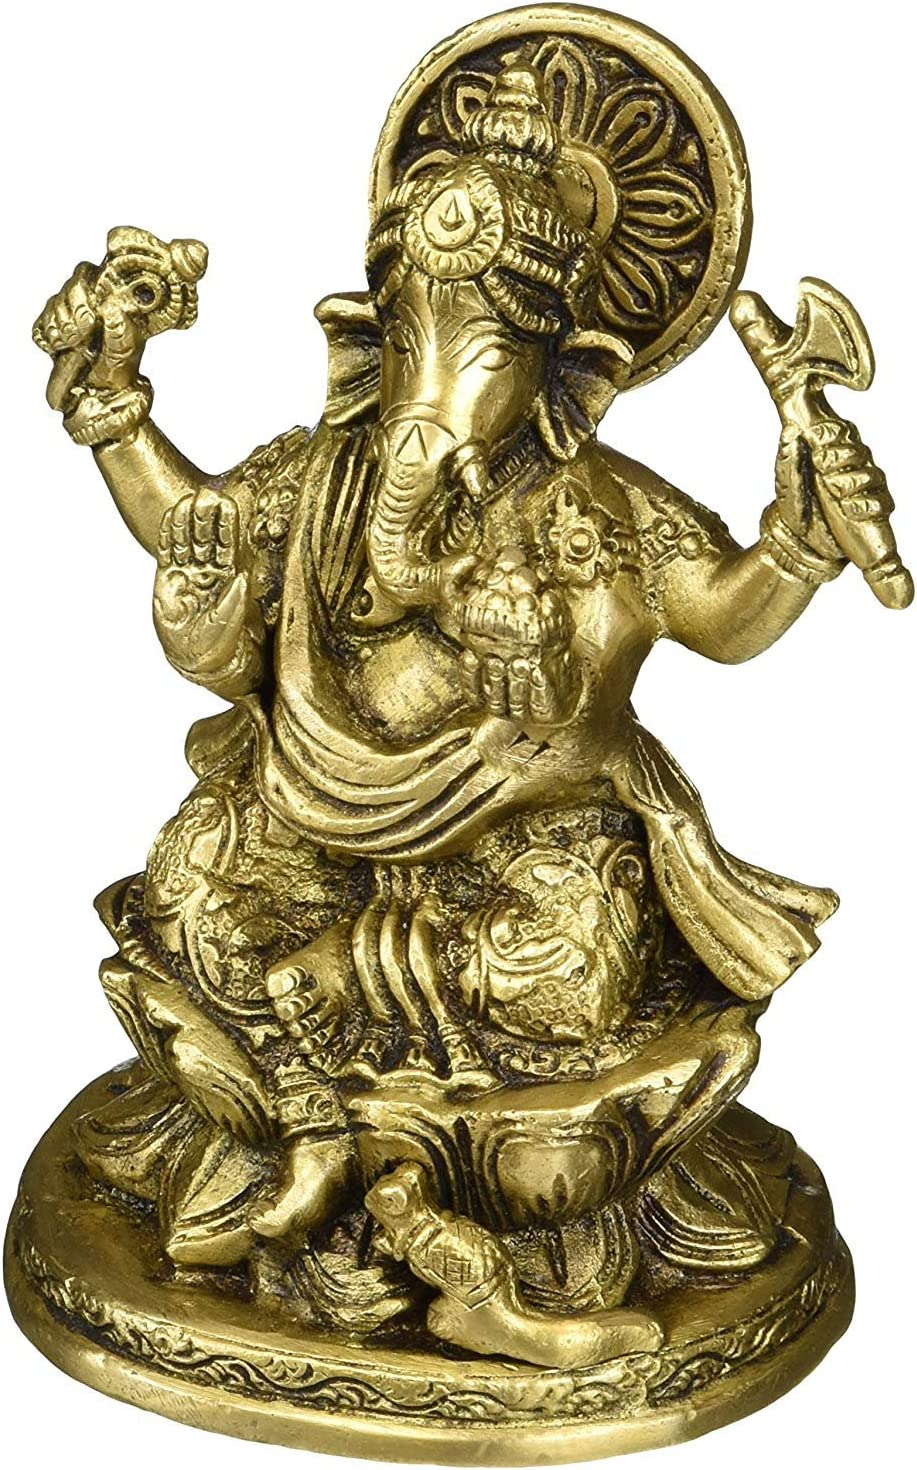 "Indian Accent 5 Inch Ganesh, Ganpati, Indian Hand Crafted Religious Sculpture of Ganesha Statue, (Weight 2 LB, 5"" X 3.2"" X 2.8""inches)"